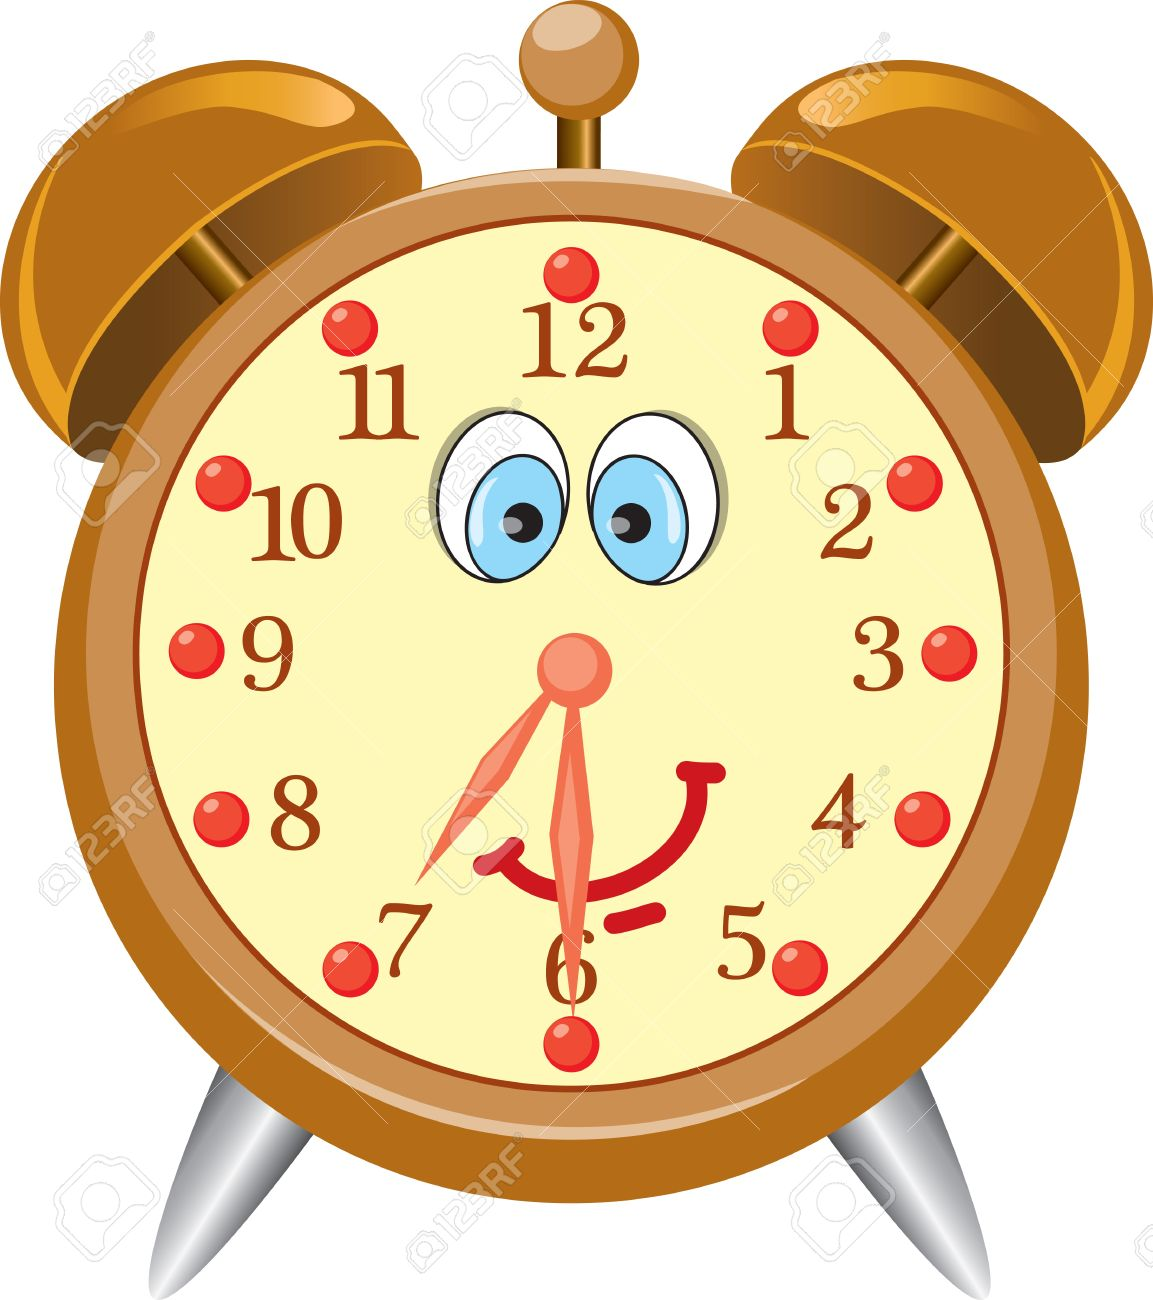 Cute alarm clock clipart 4 » Clipart Station